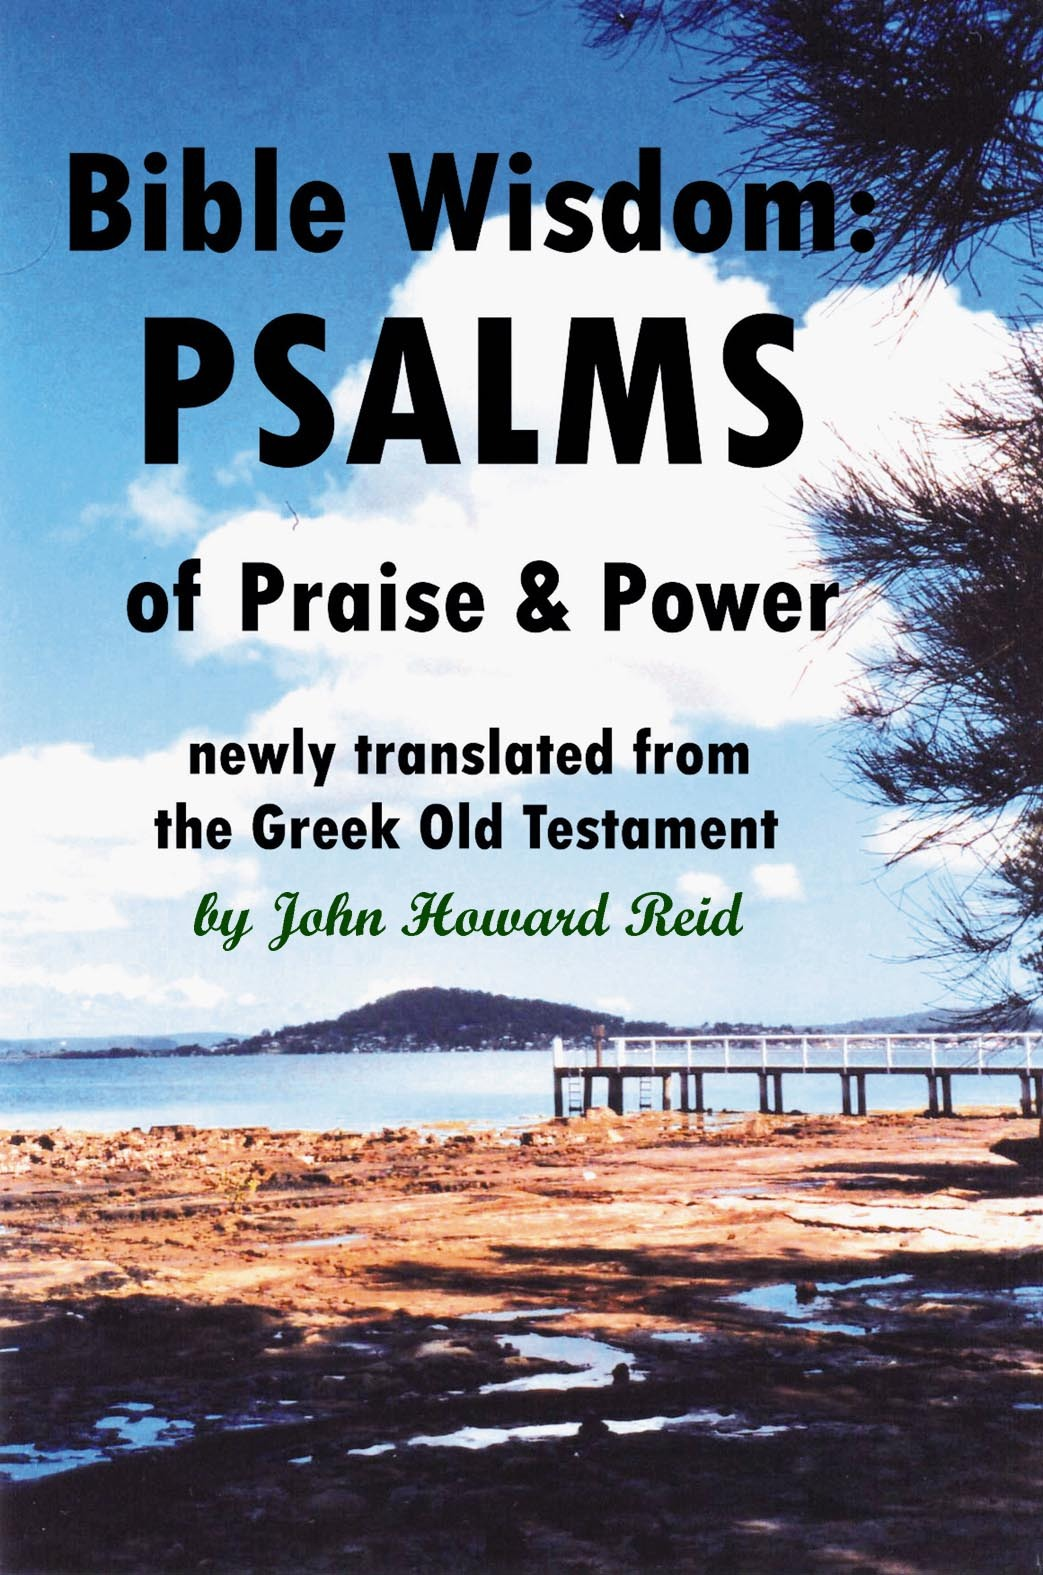 Bible Wisdom: PSALMS of Praise & Power Newly Translated from the Greek Old Testament By: John Howard Reid